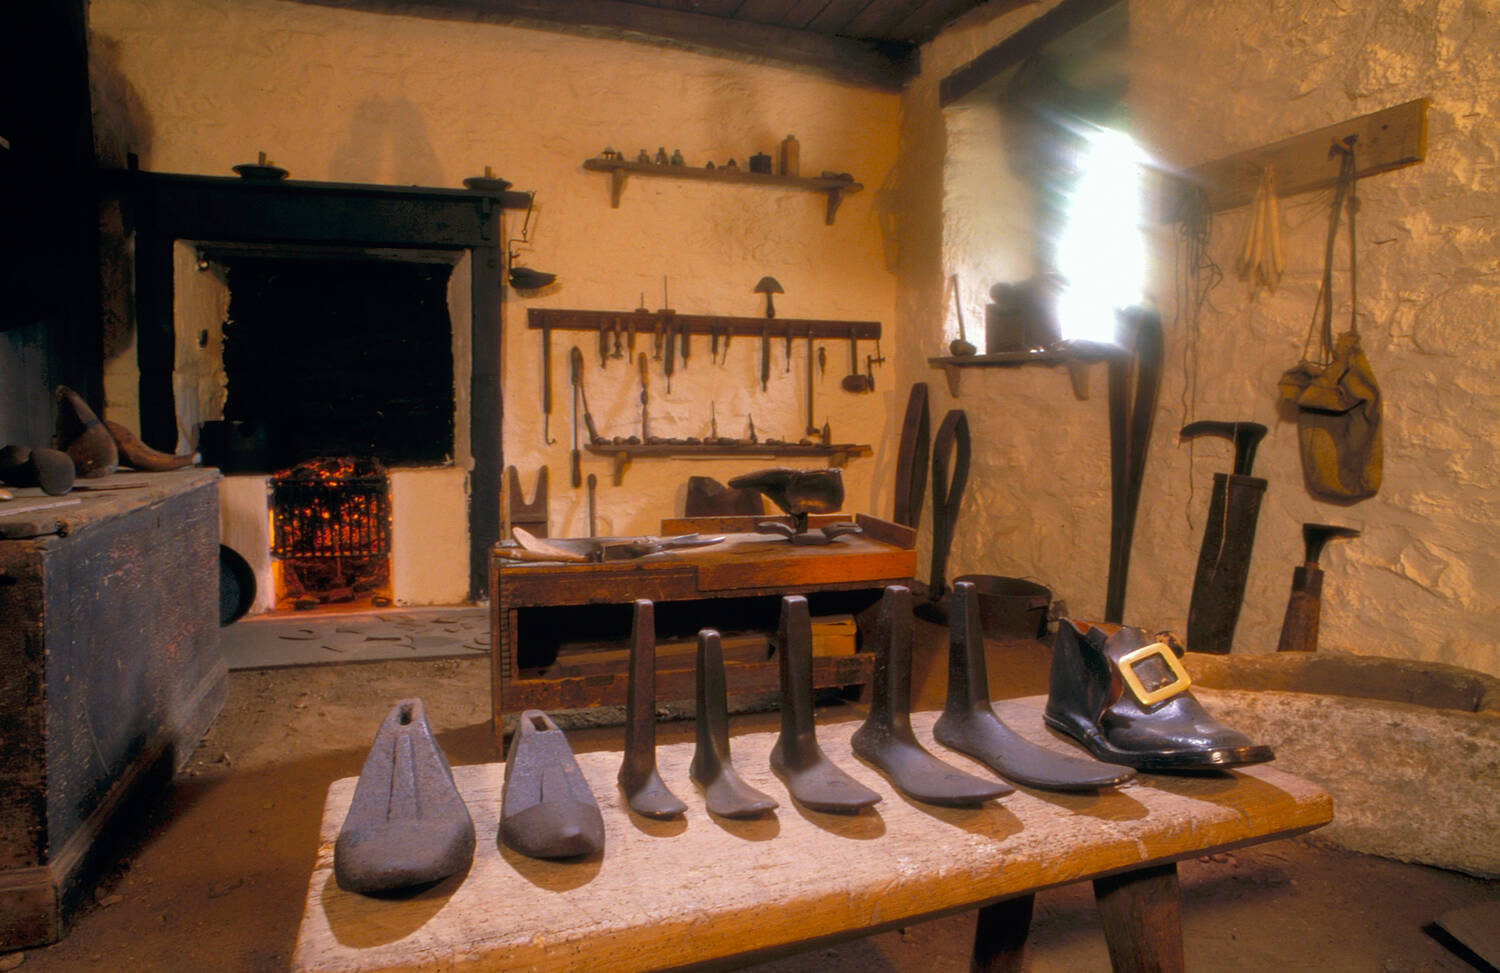 Souter Johnnie's workshop with a fireplace and all the shoemaking tools